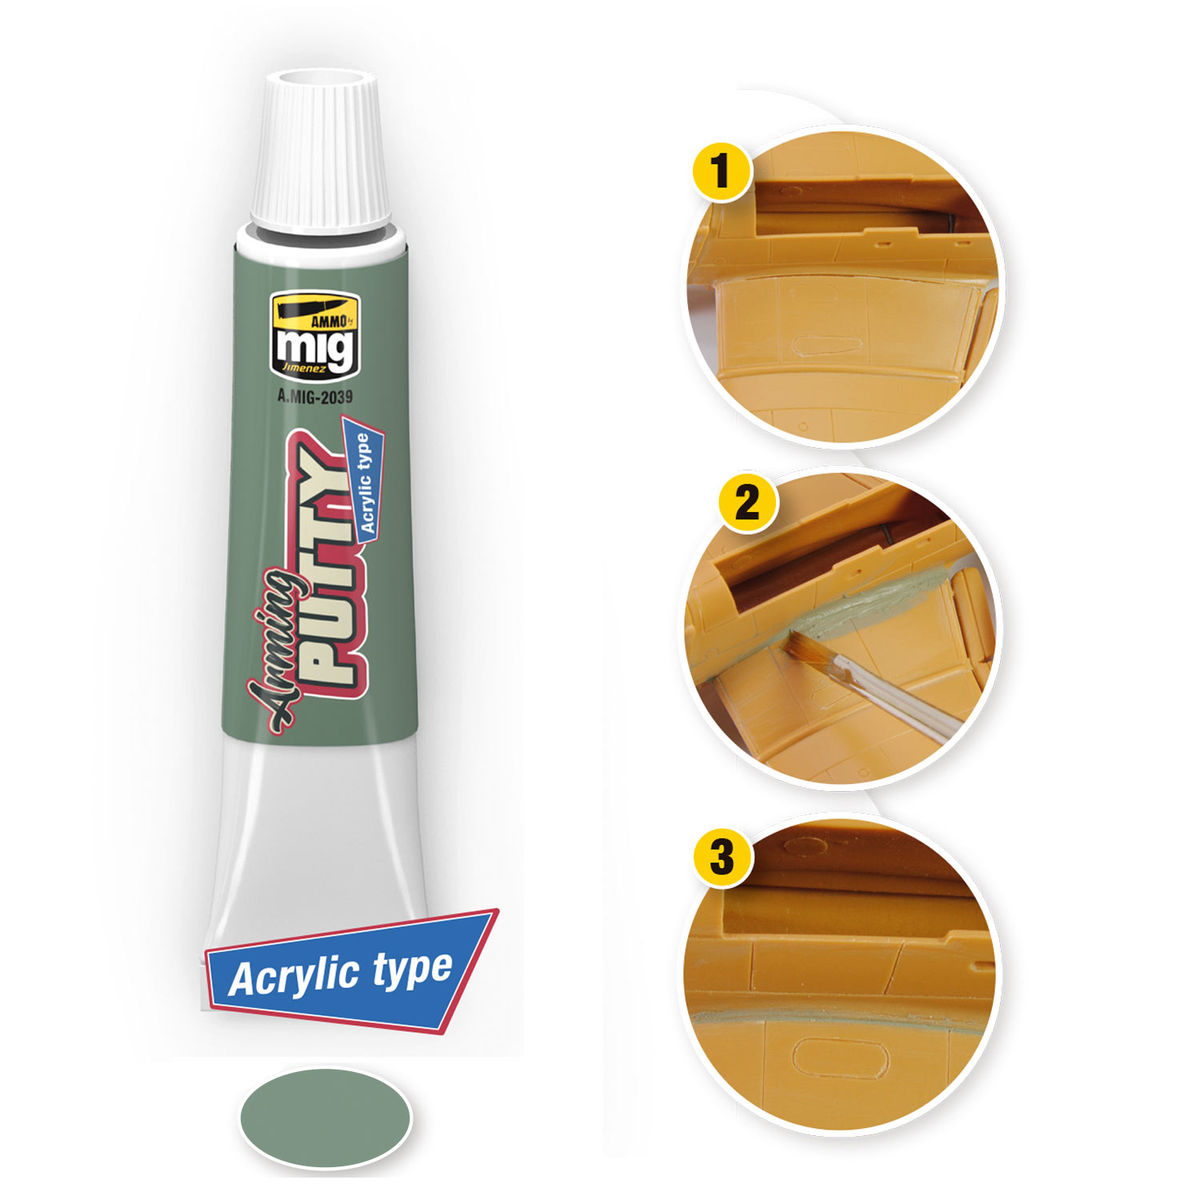 ARMING PUTTY. ACRYLIC TYPE - Image 1